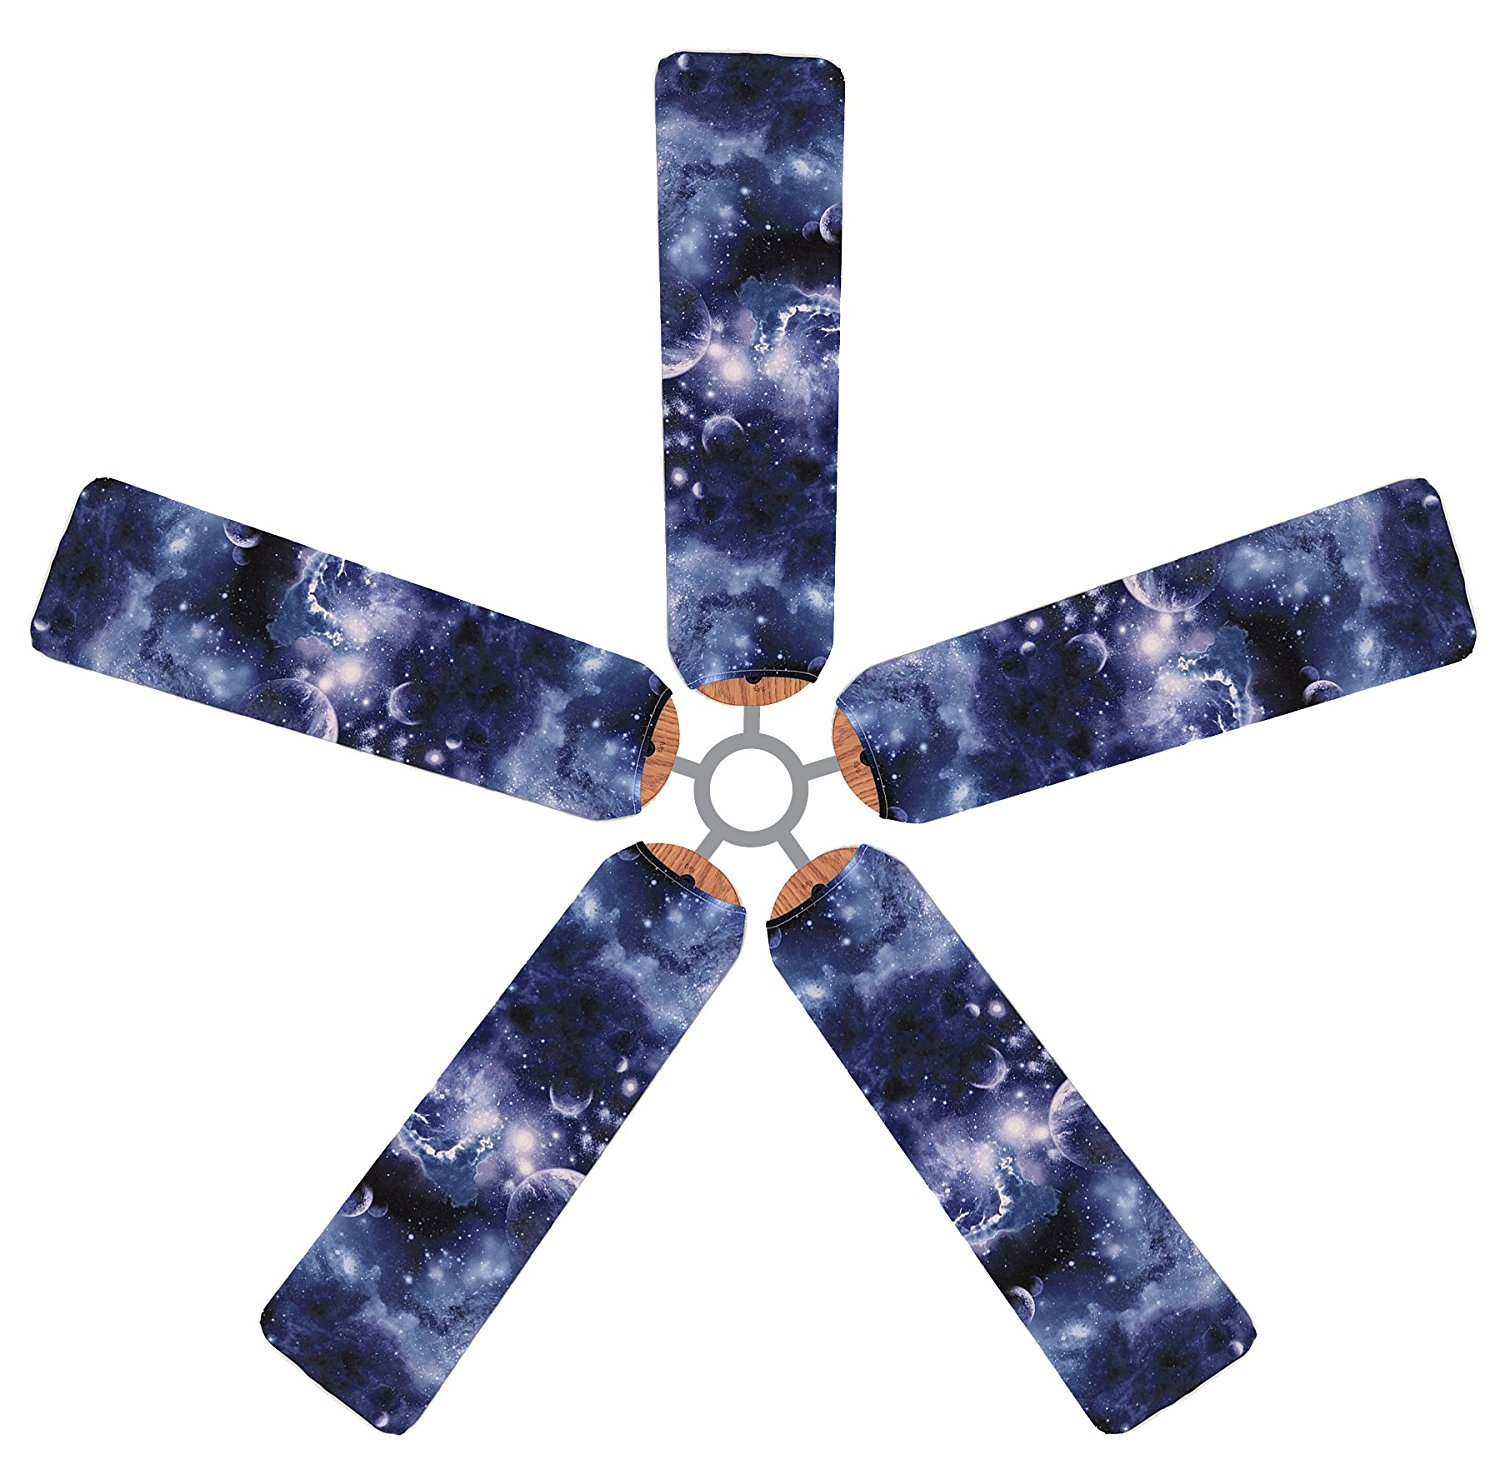 Fan Blade Designs V8K3CP-64P Ceiling Fan Blade Covers, Outer Space